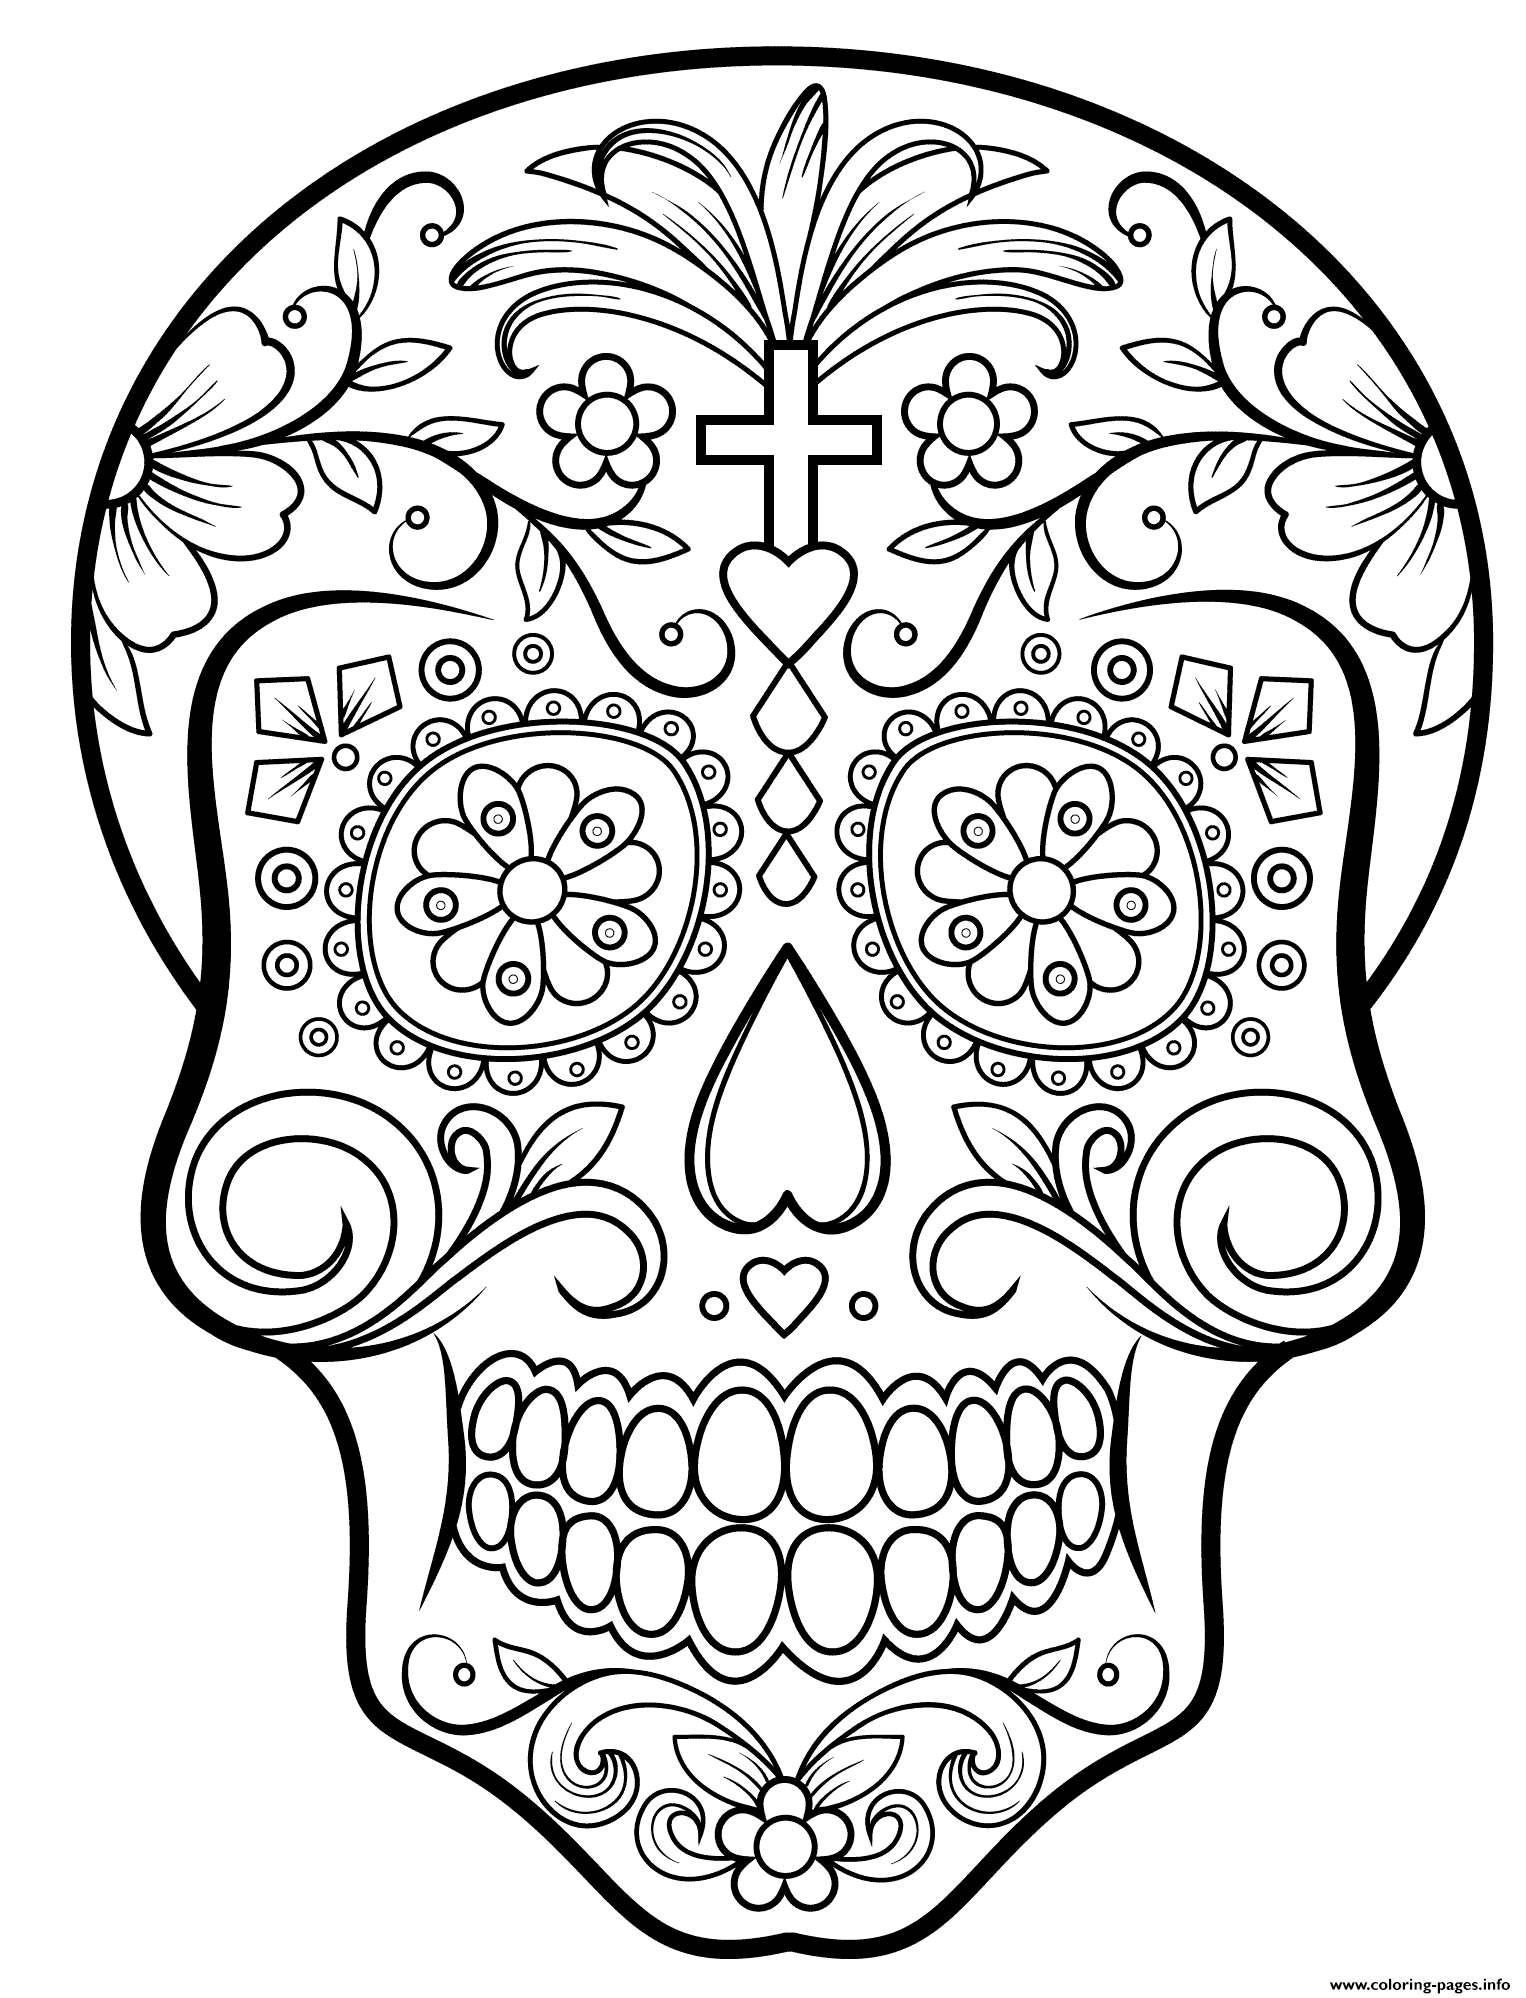 Sugar Skull Calavera coloring pages